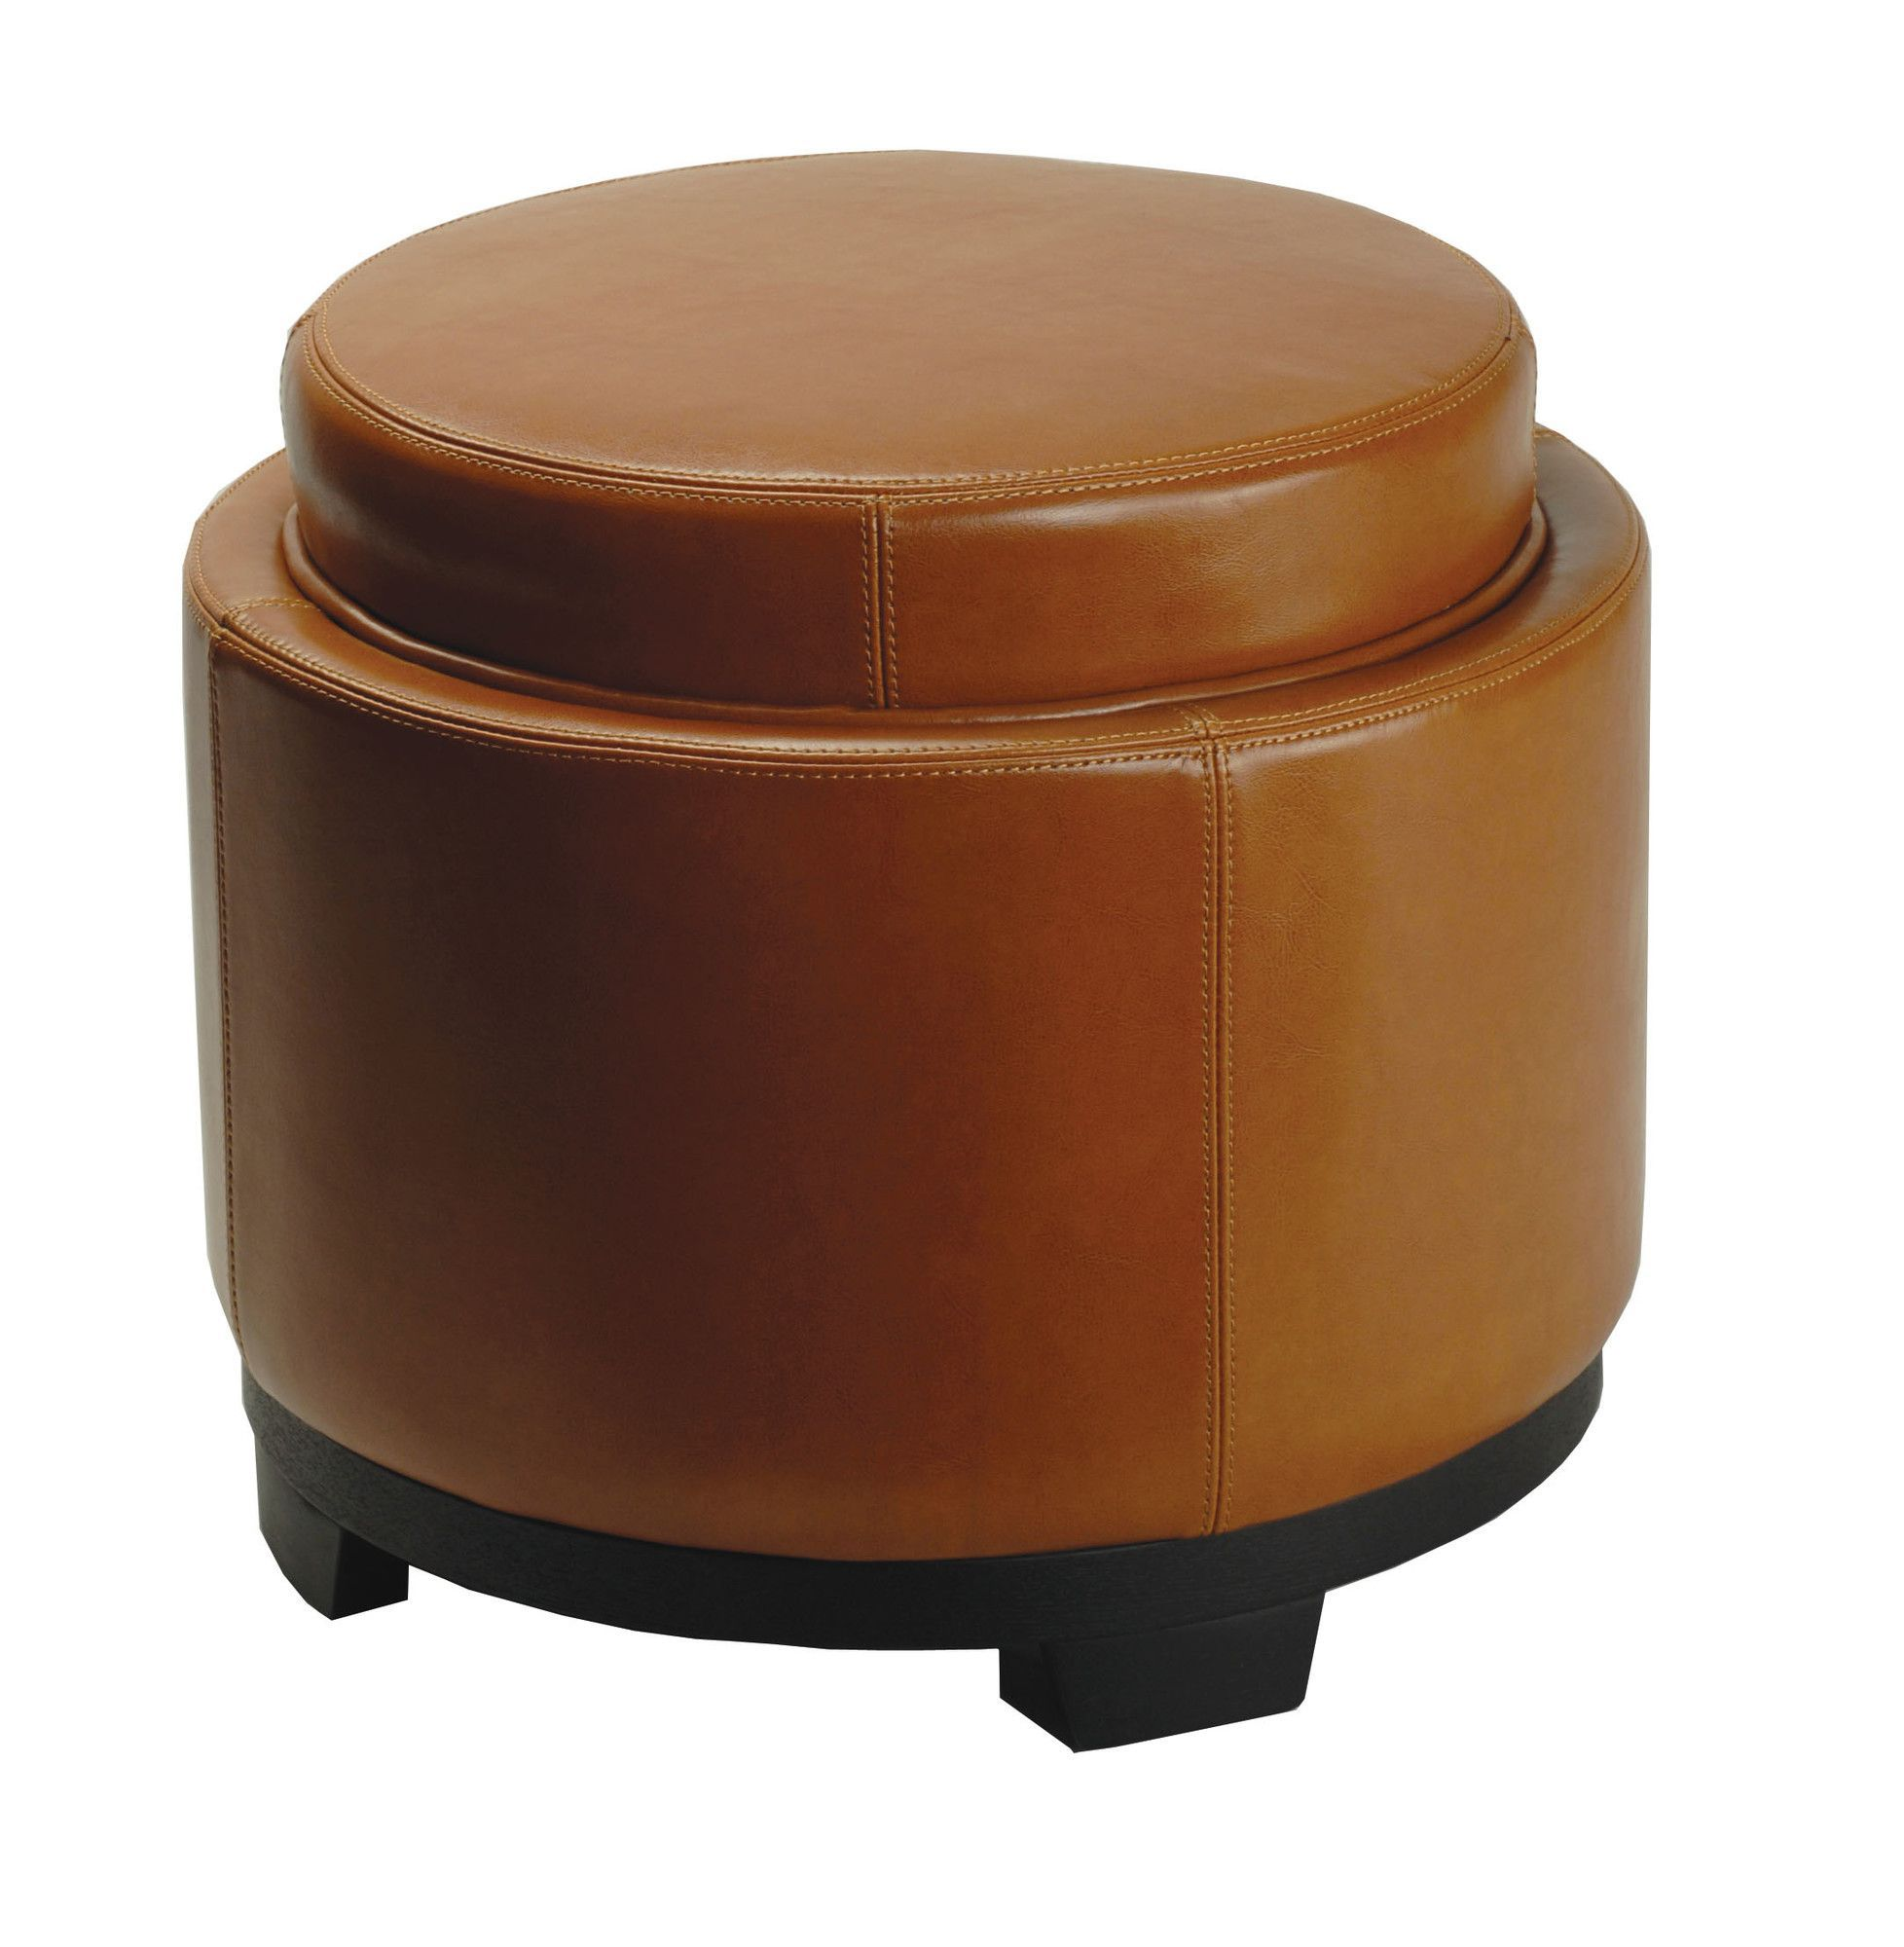 Round Cocktail Ottoman with Storage Tray in Saddle | Products ...